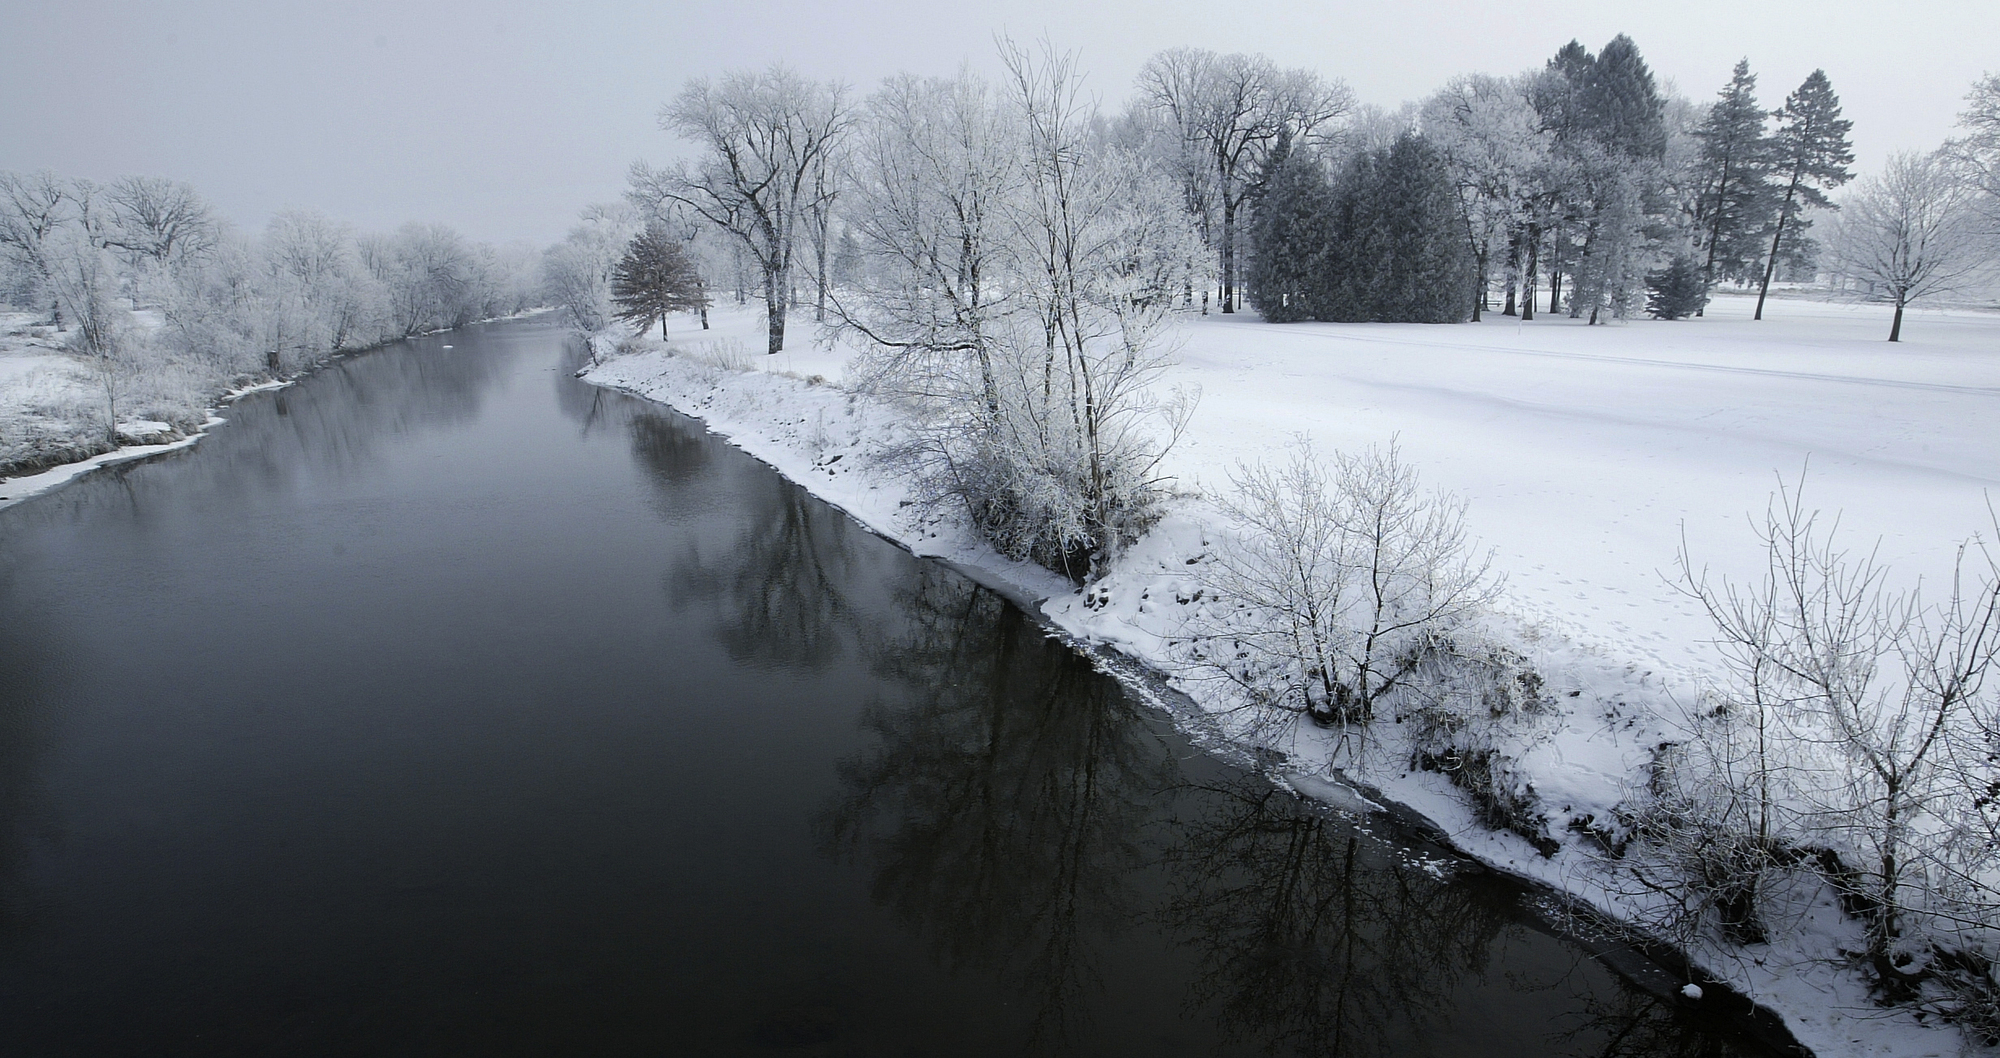 The Cedar River on an overcast winter day with snow-encrusted trees.  Photo taken by Nate Howard.